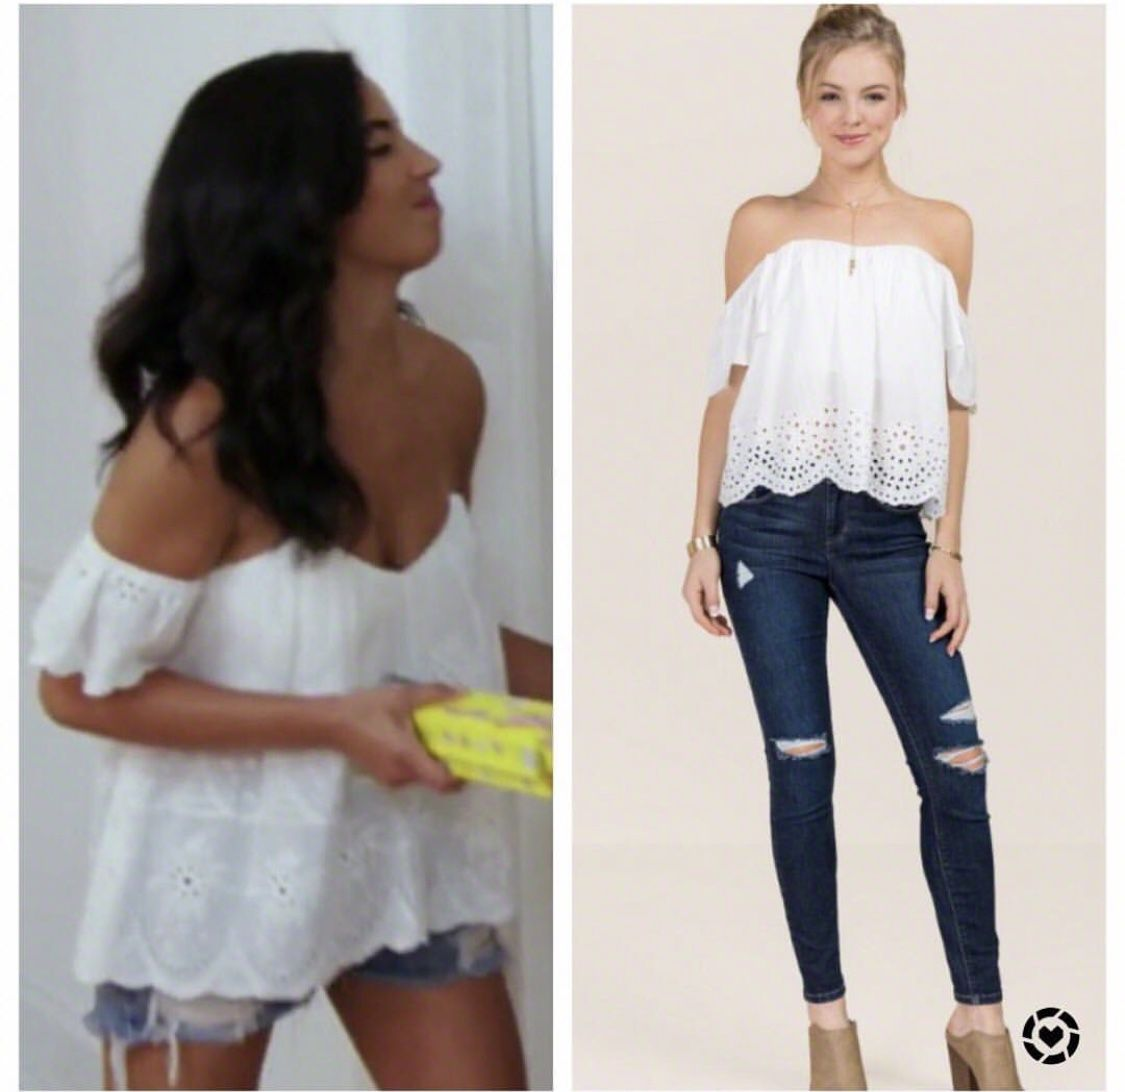 dbcc618af29782 Danielle Olivera s White Off the Shoulder Top In Summer House https   www.